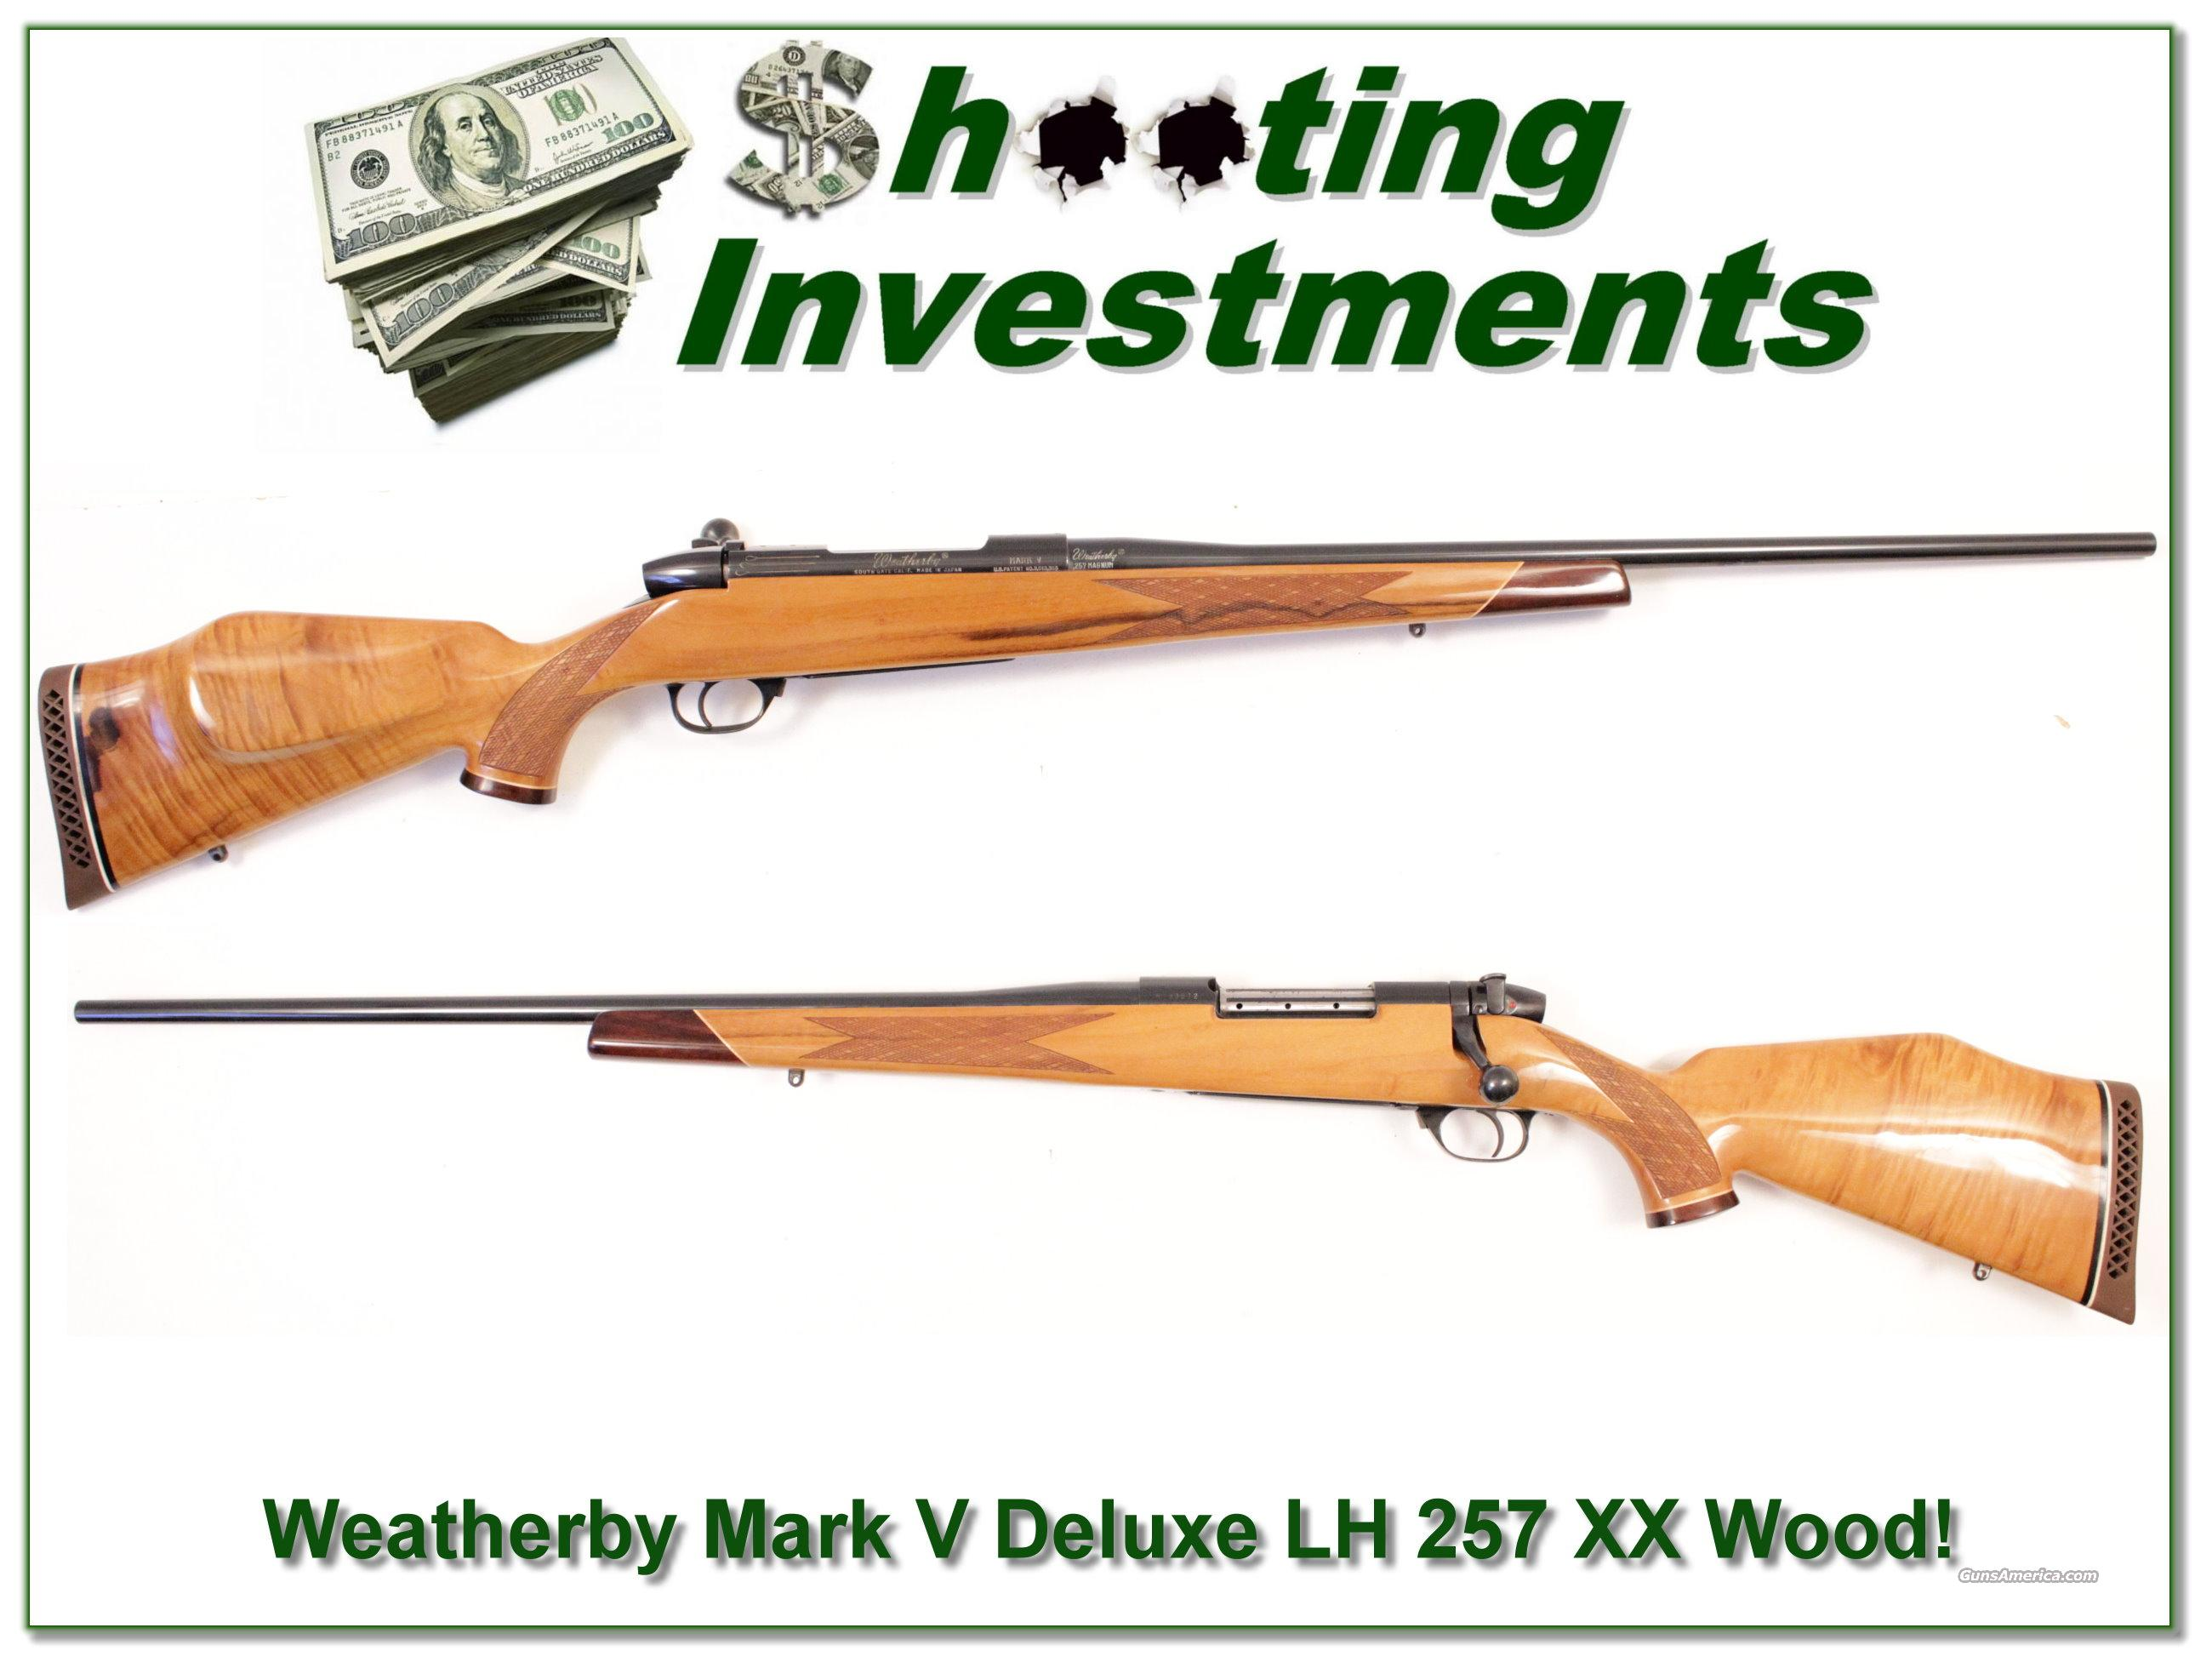 Weatherby Mark V Deluxe 257 Left Handed XX Blond Wood!  Guns > Rifles > Weatherby Rifles > Sporting